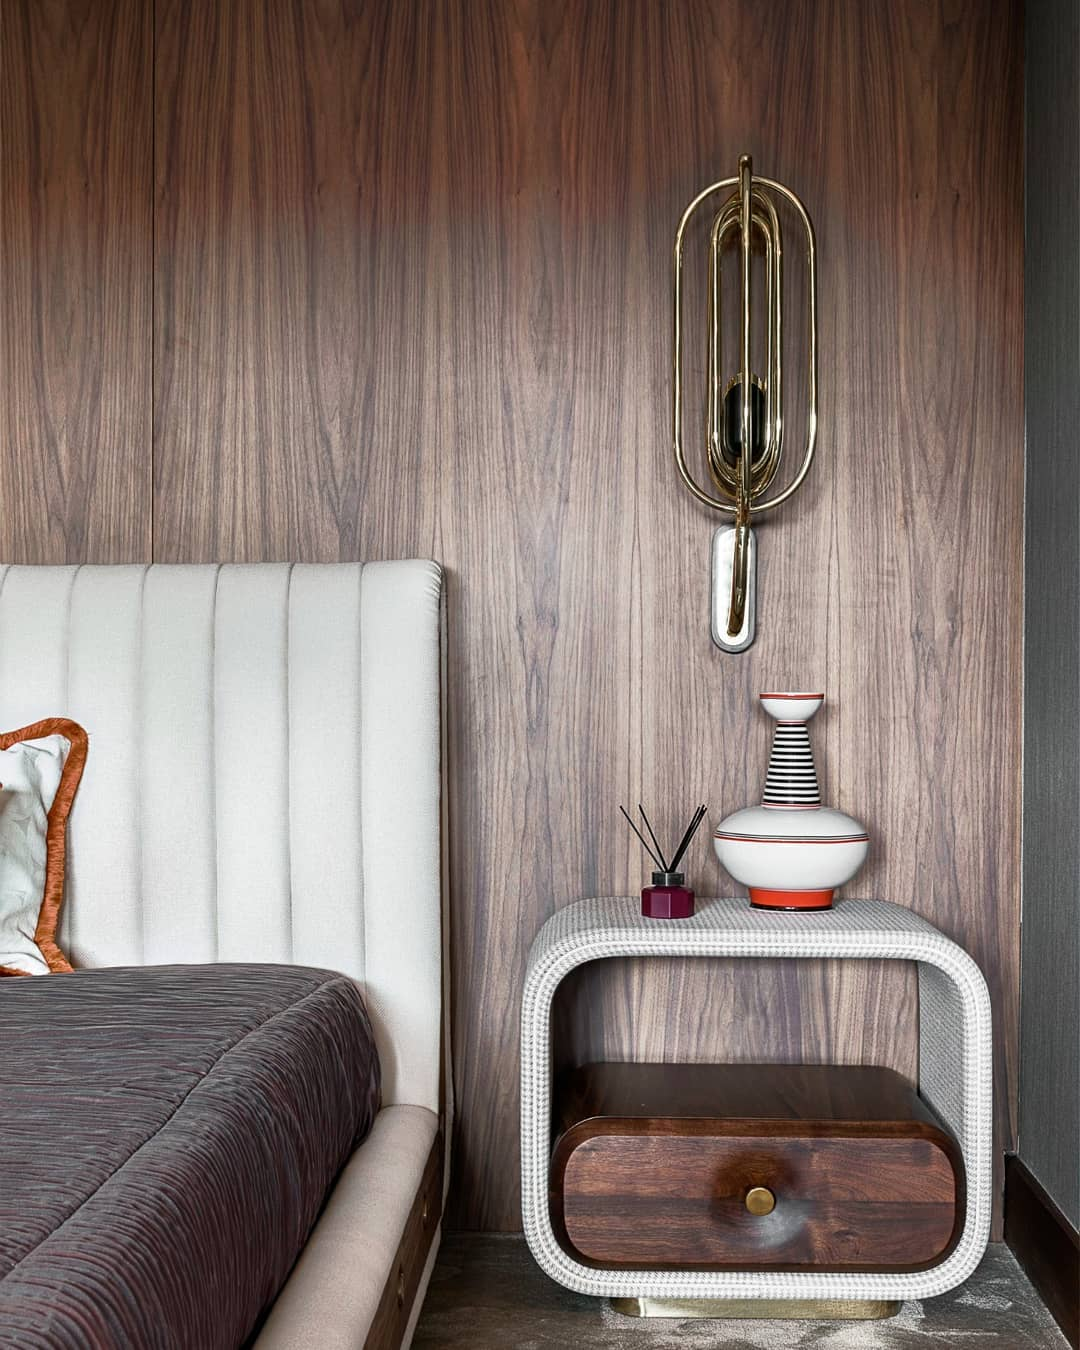 LOOKING FOR THE PERFECT VINTAGE DUE FOR YOUR MID-CENTURY BEDROOM?